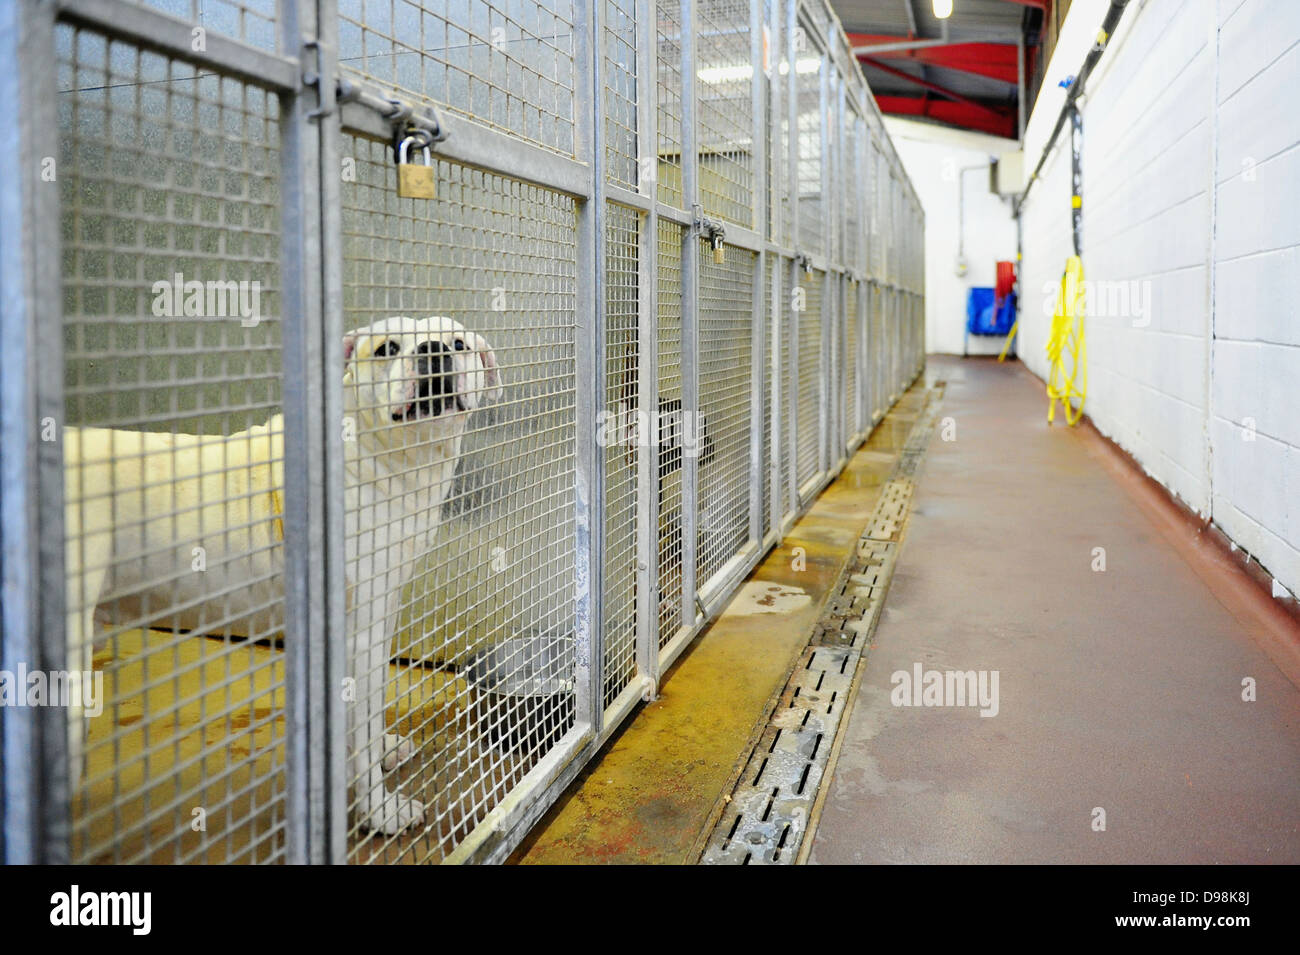 A dog at Cardiff Dogs Home, who faced overcrowding after Christmas. Stock Photo